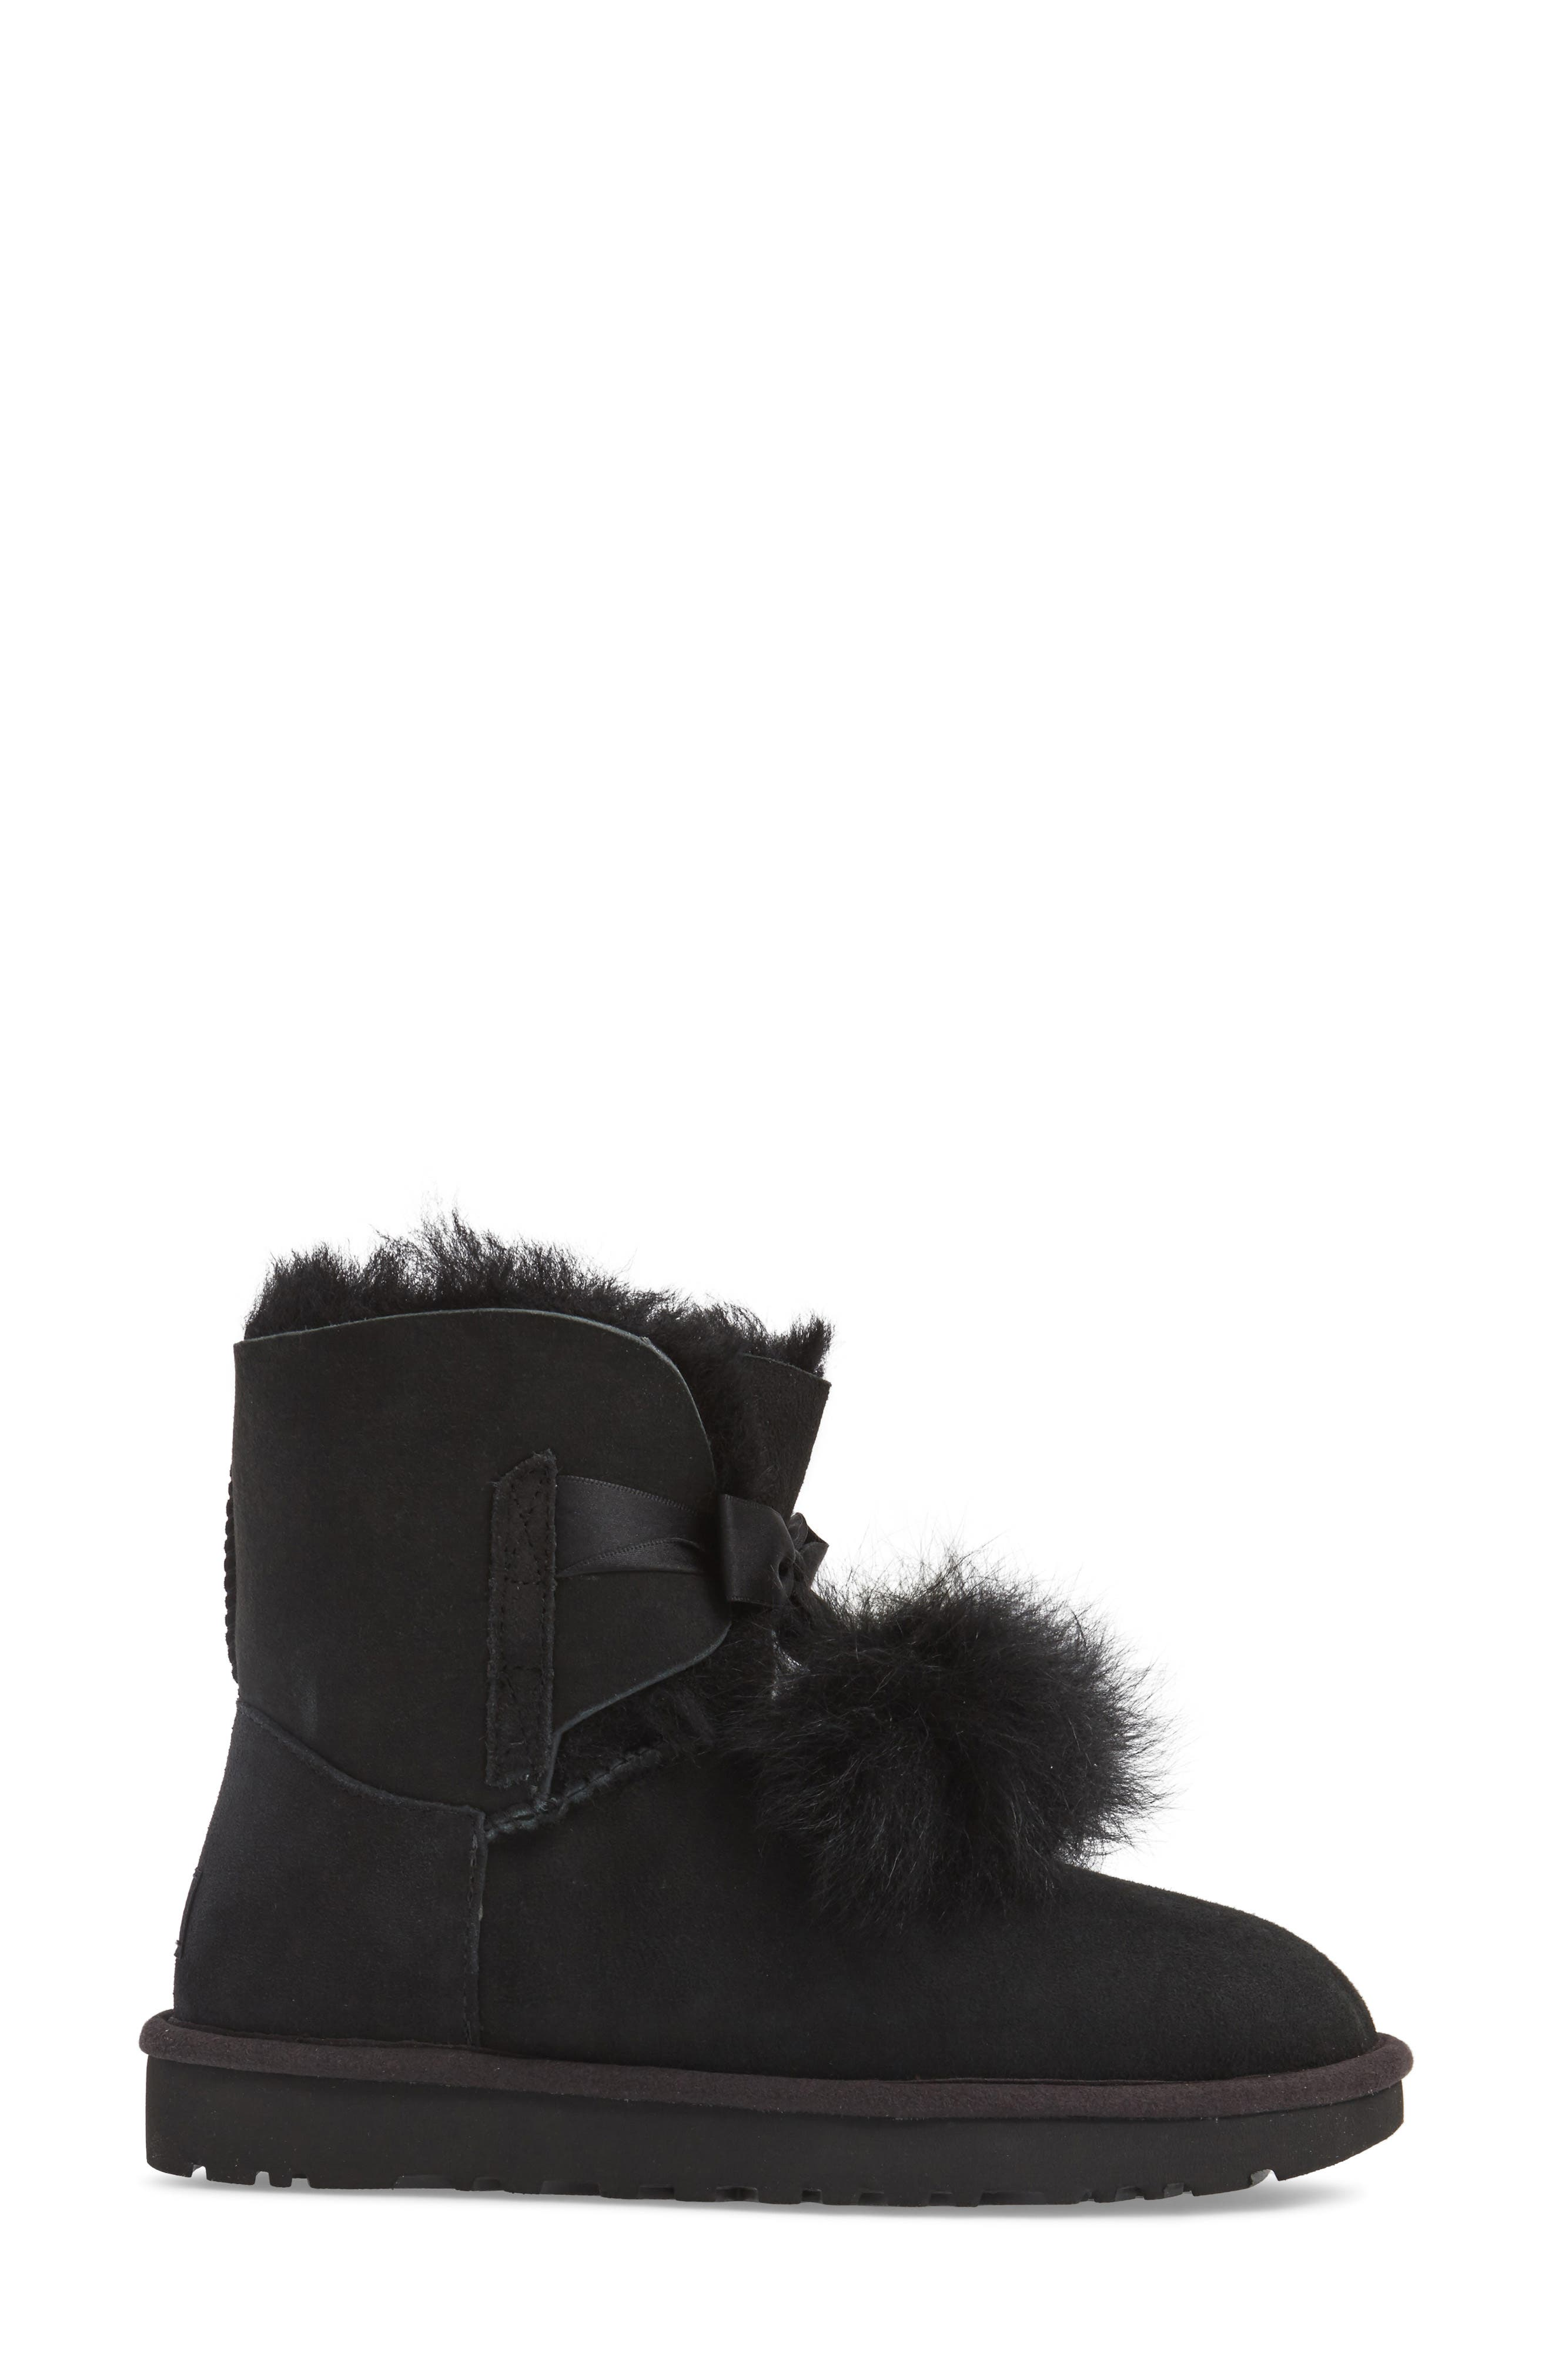 Gita Genuine Shearling Boot,                             Alternate thumbnail 3, color,                             Black Suede